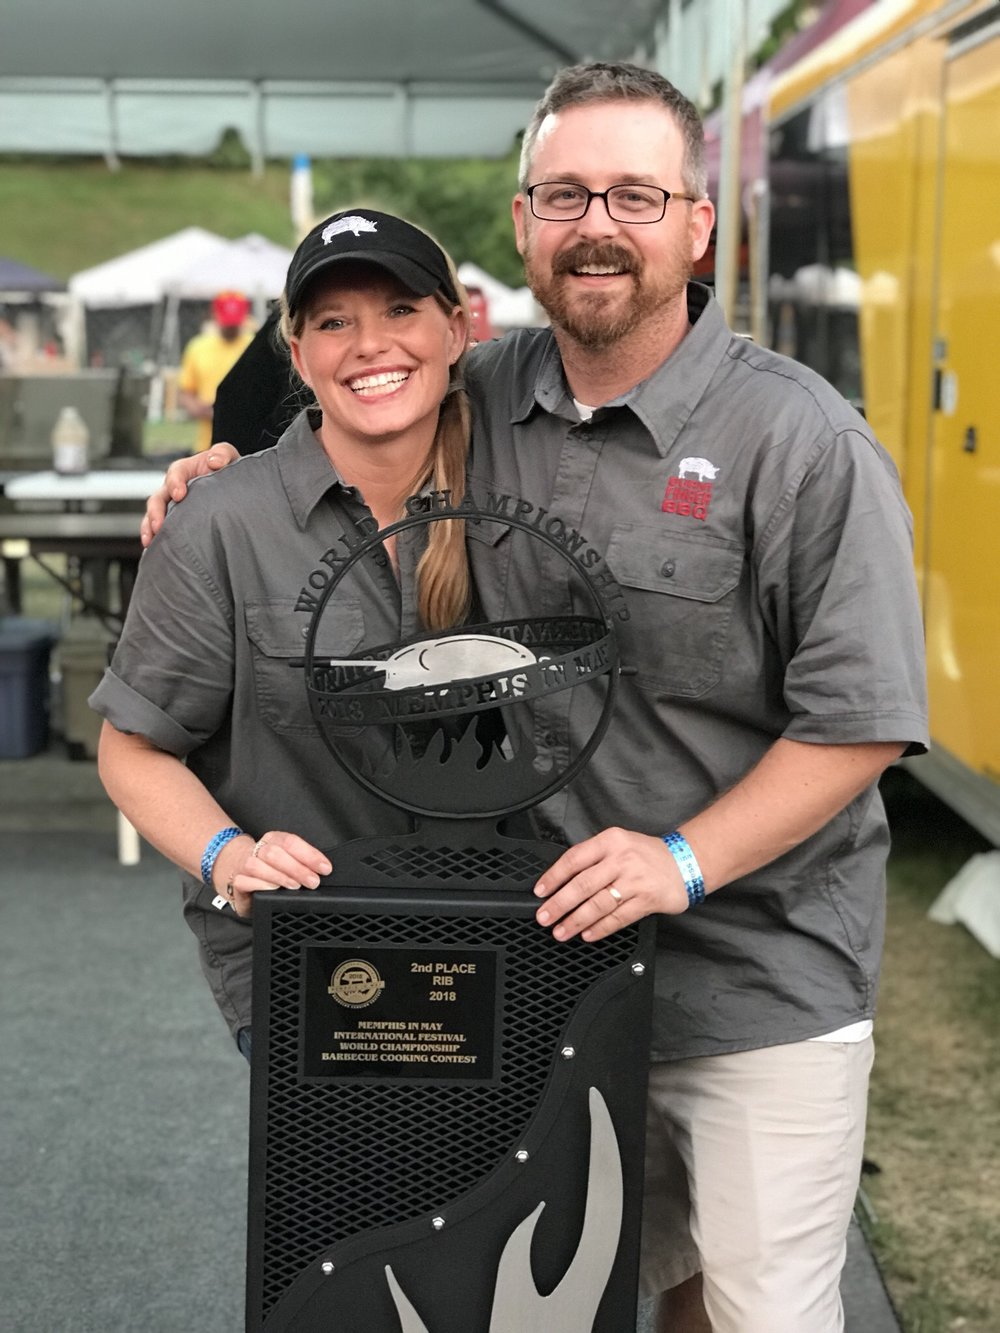 Megan and Jason Day nabbed second place in ribs at the prestigious Memphis in May International Festival World Championship Barbecue Cooking Contest.